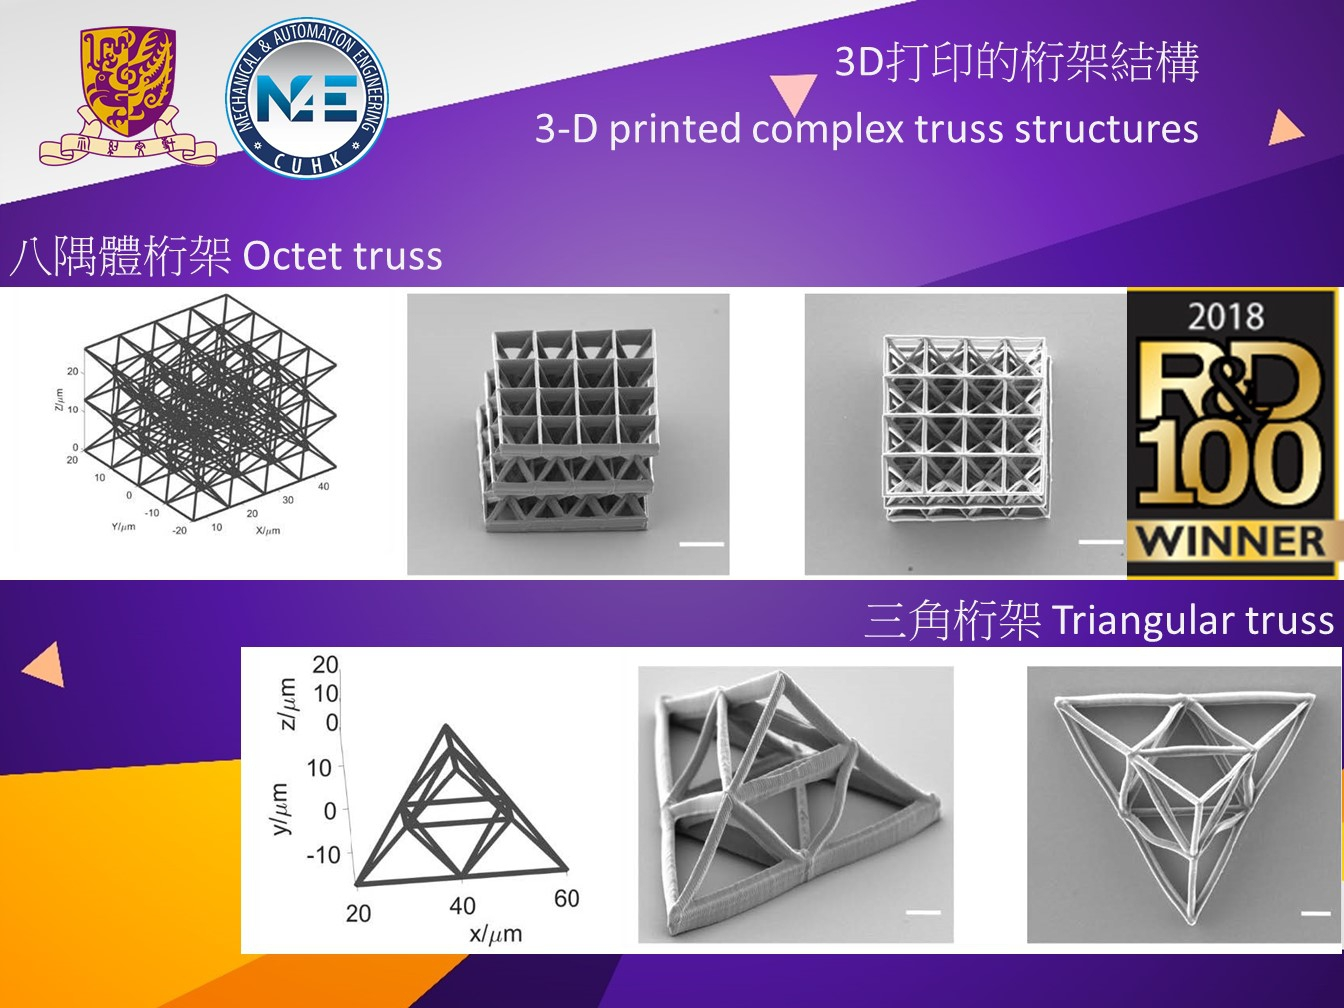 3-D printed complex truss structures